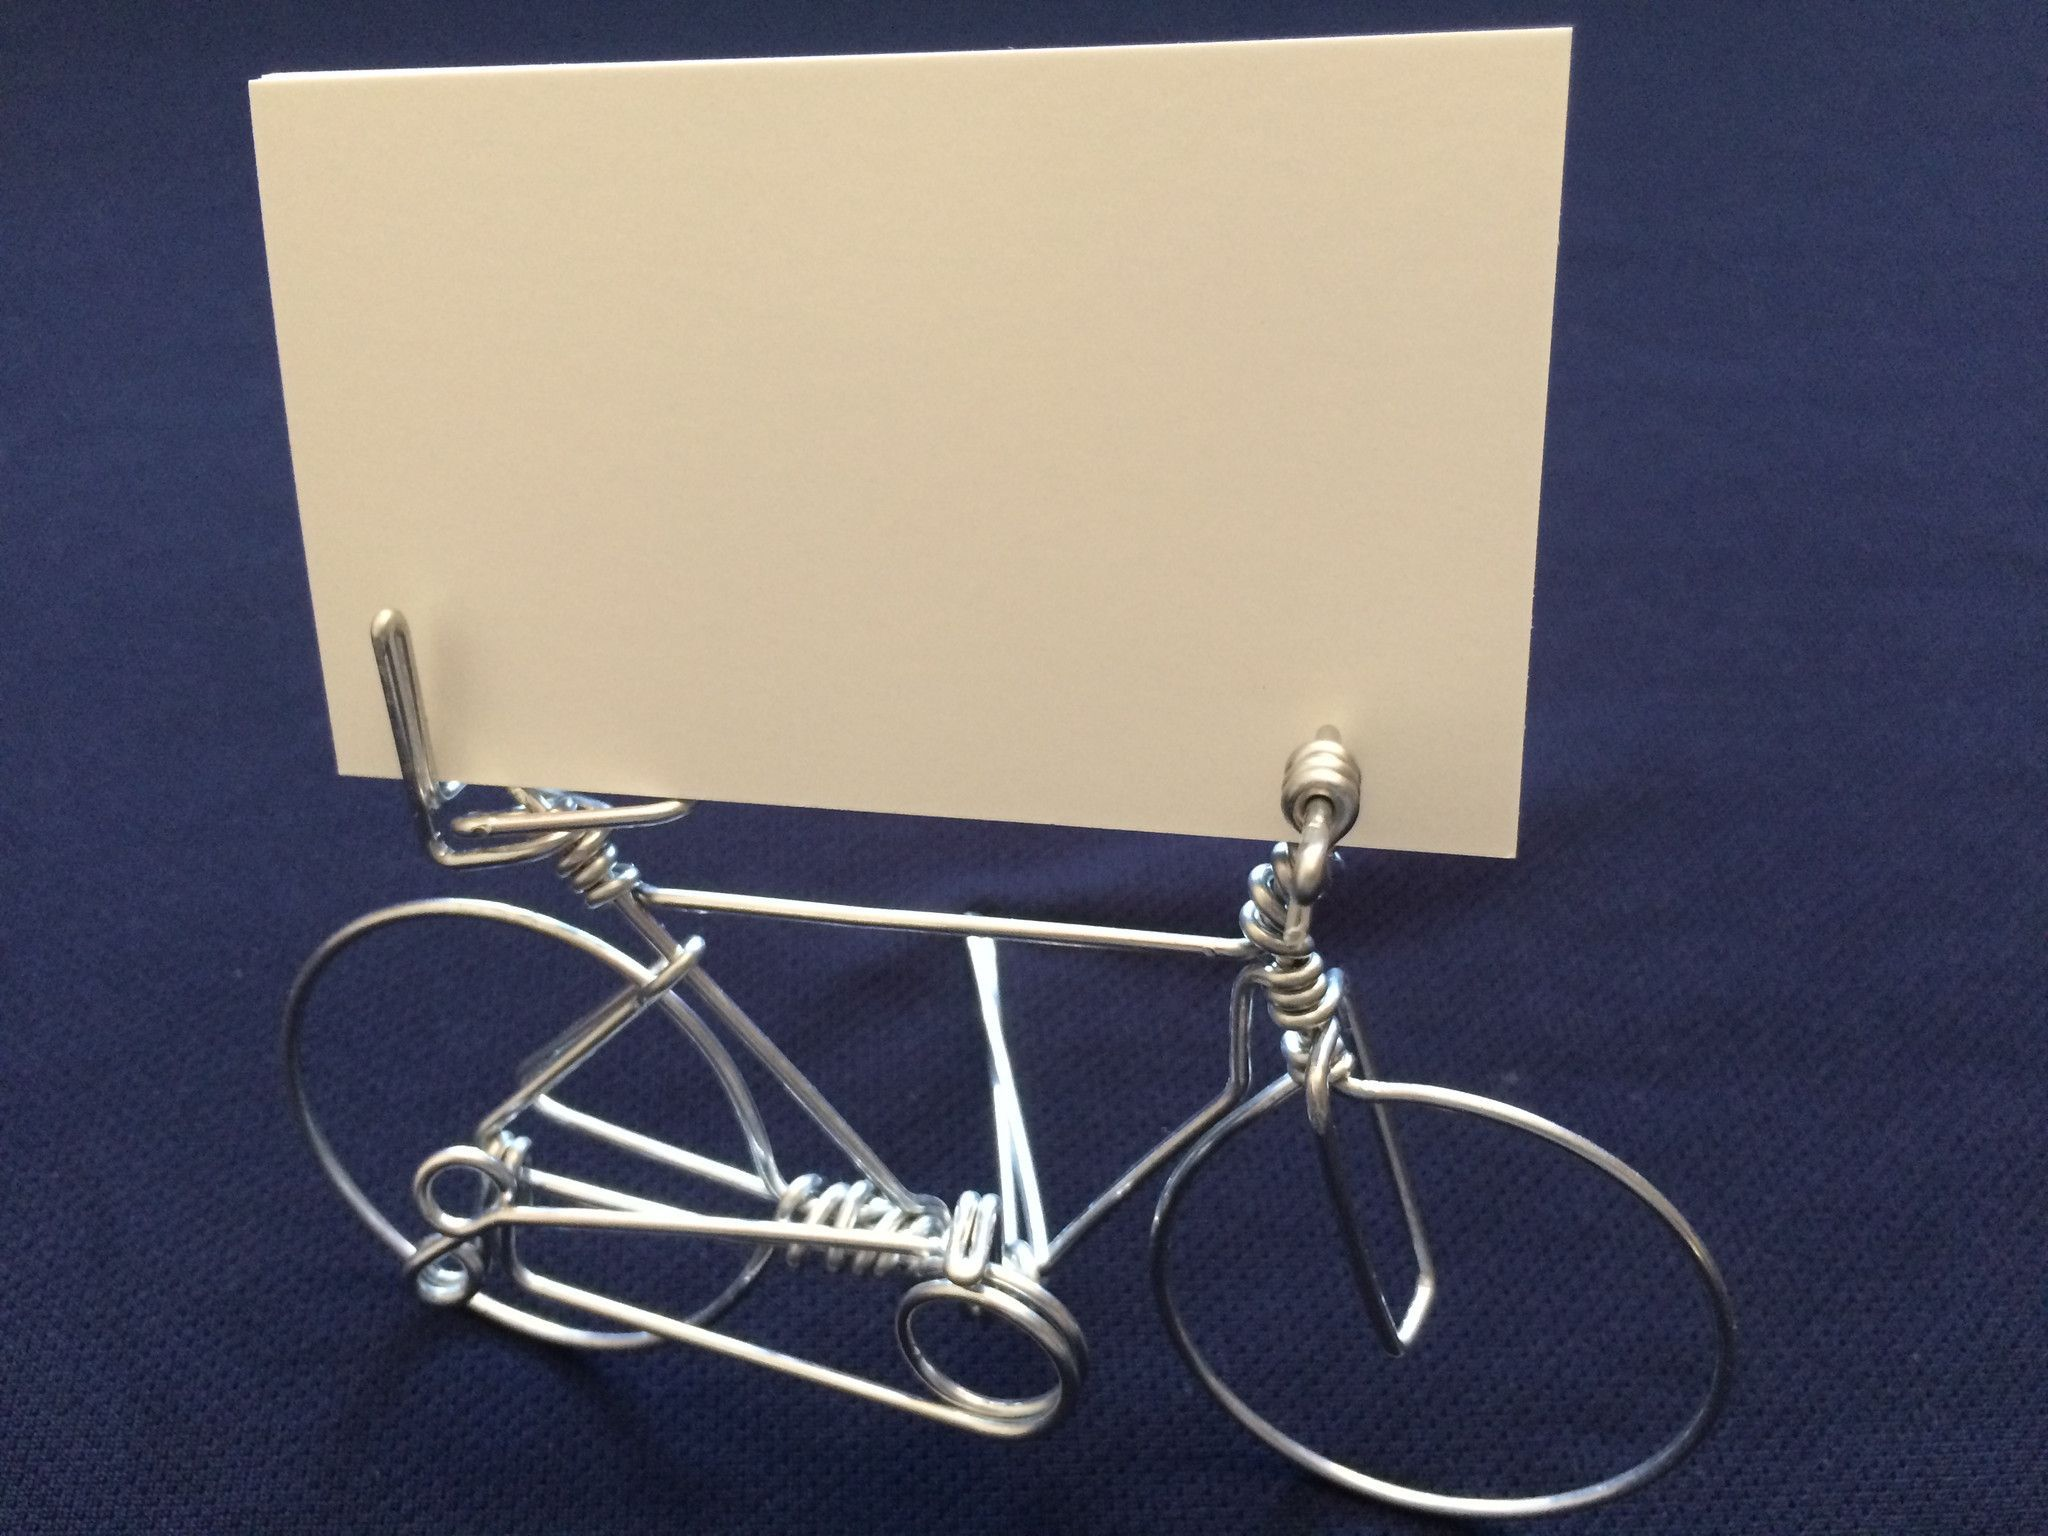 Handmade creative bicycle business card holder on desk business handmade creative desk bicycle business card holder unique cute birthday gift ideas for bike lovers cool holiday cycling gifts for cyclists hold 1 to colourmoves